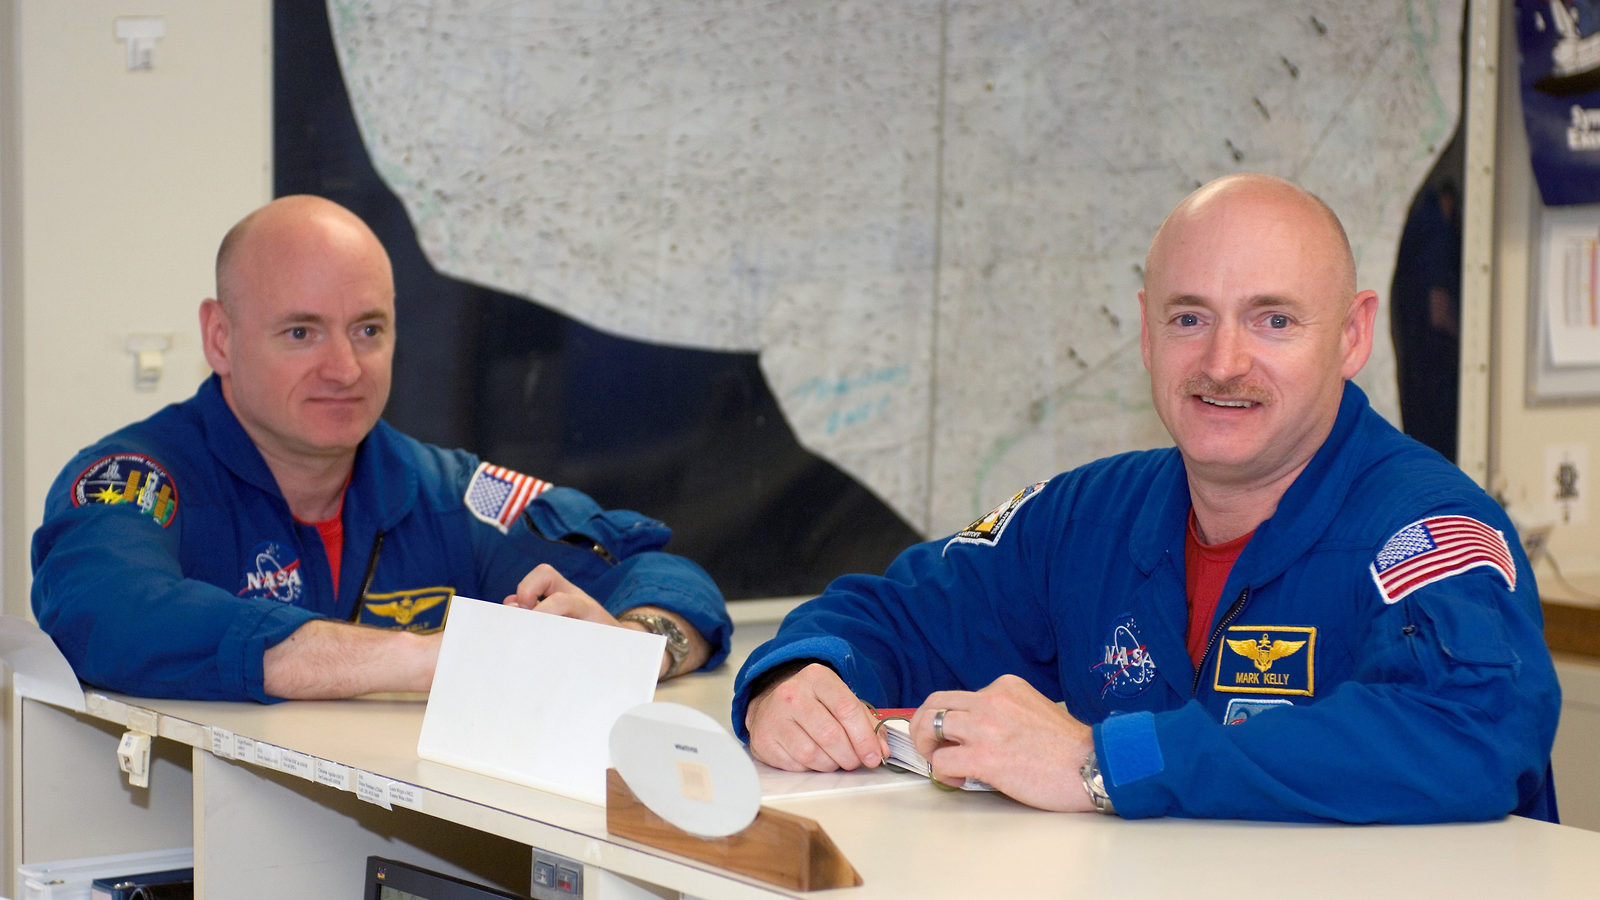 Photo: Twins Scott and Mark Kelly